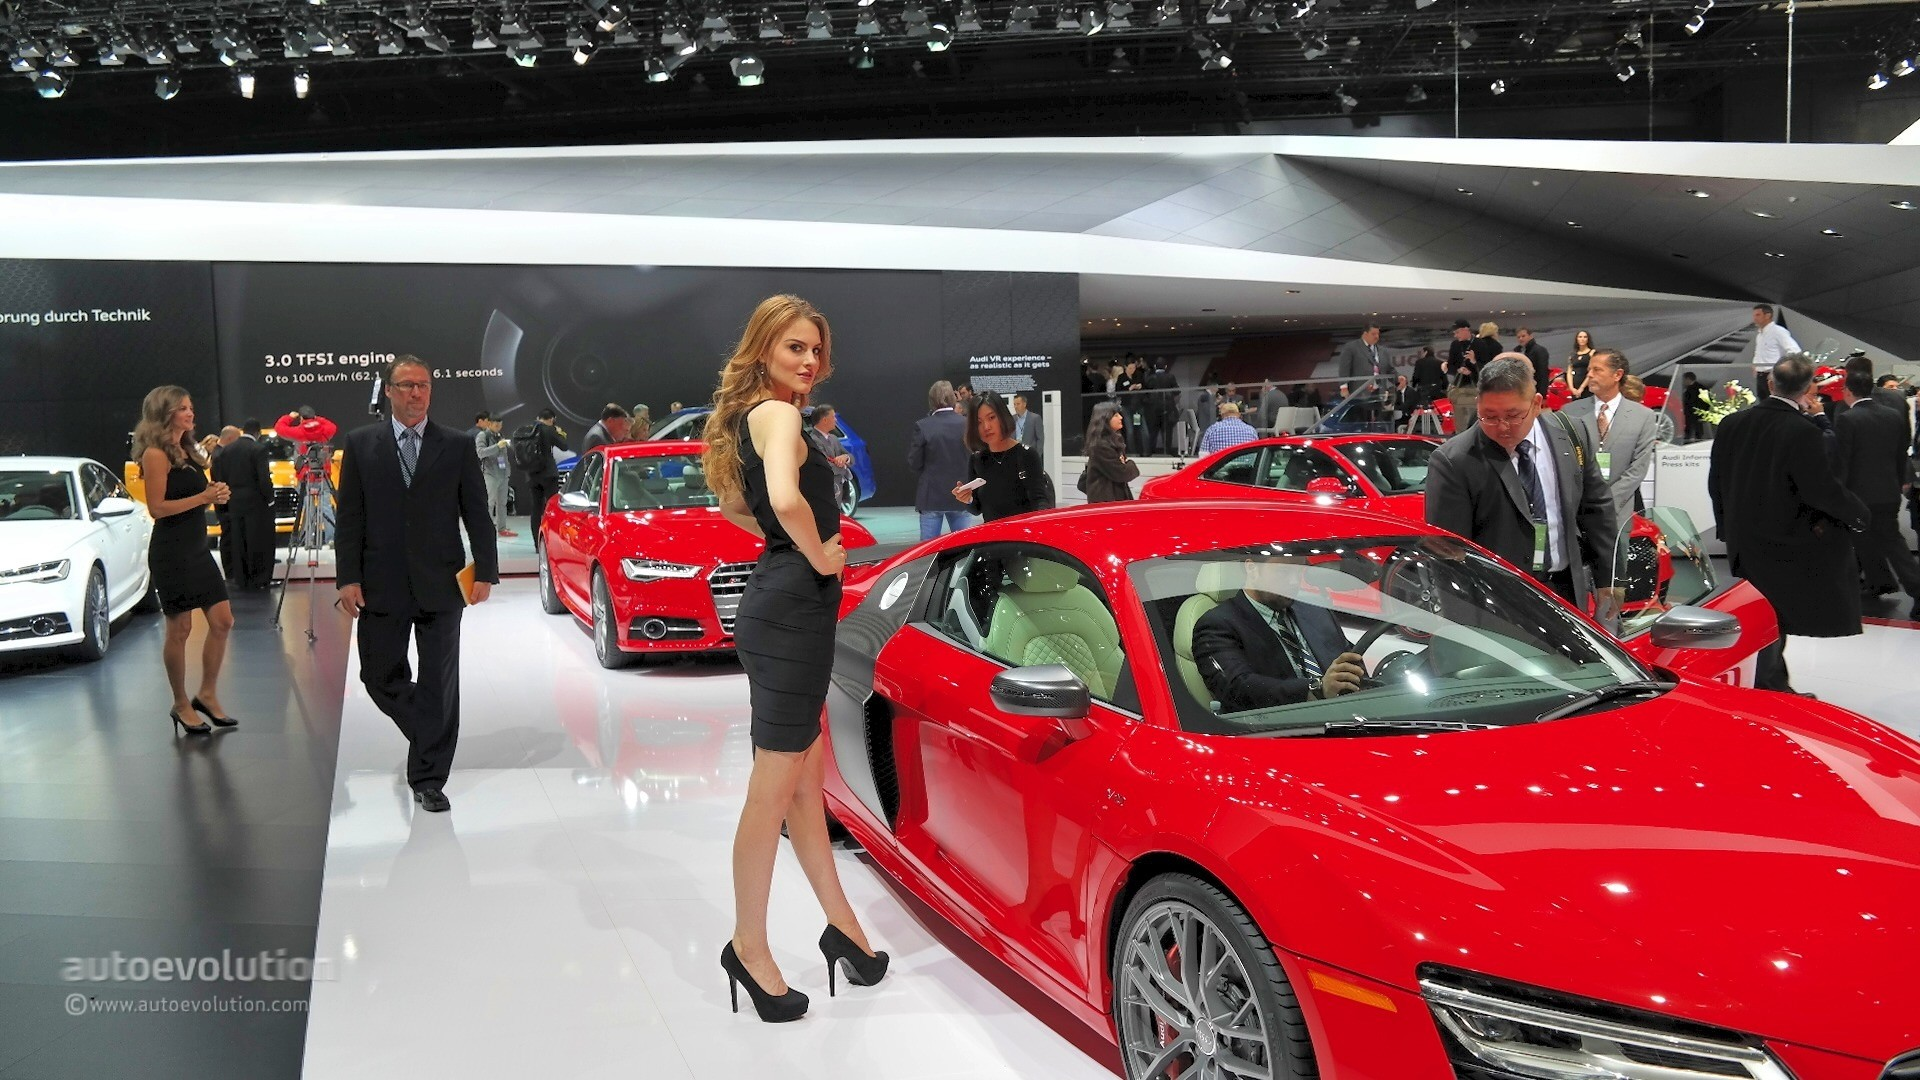 Hot Girls Of The 2015 Detroit Auto Show Autoevolution